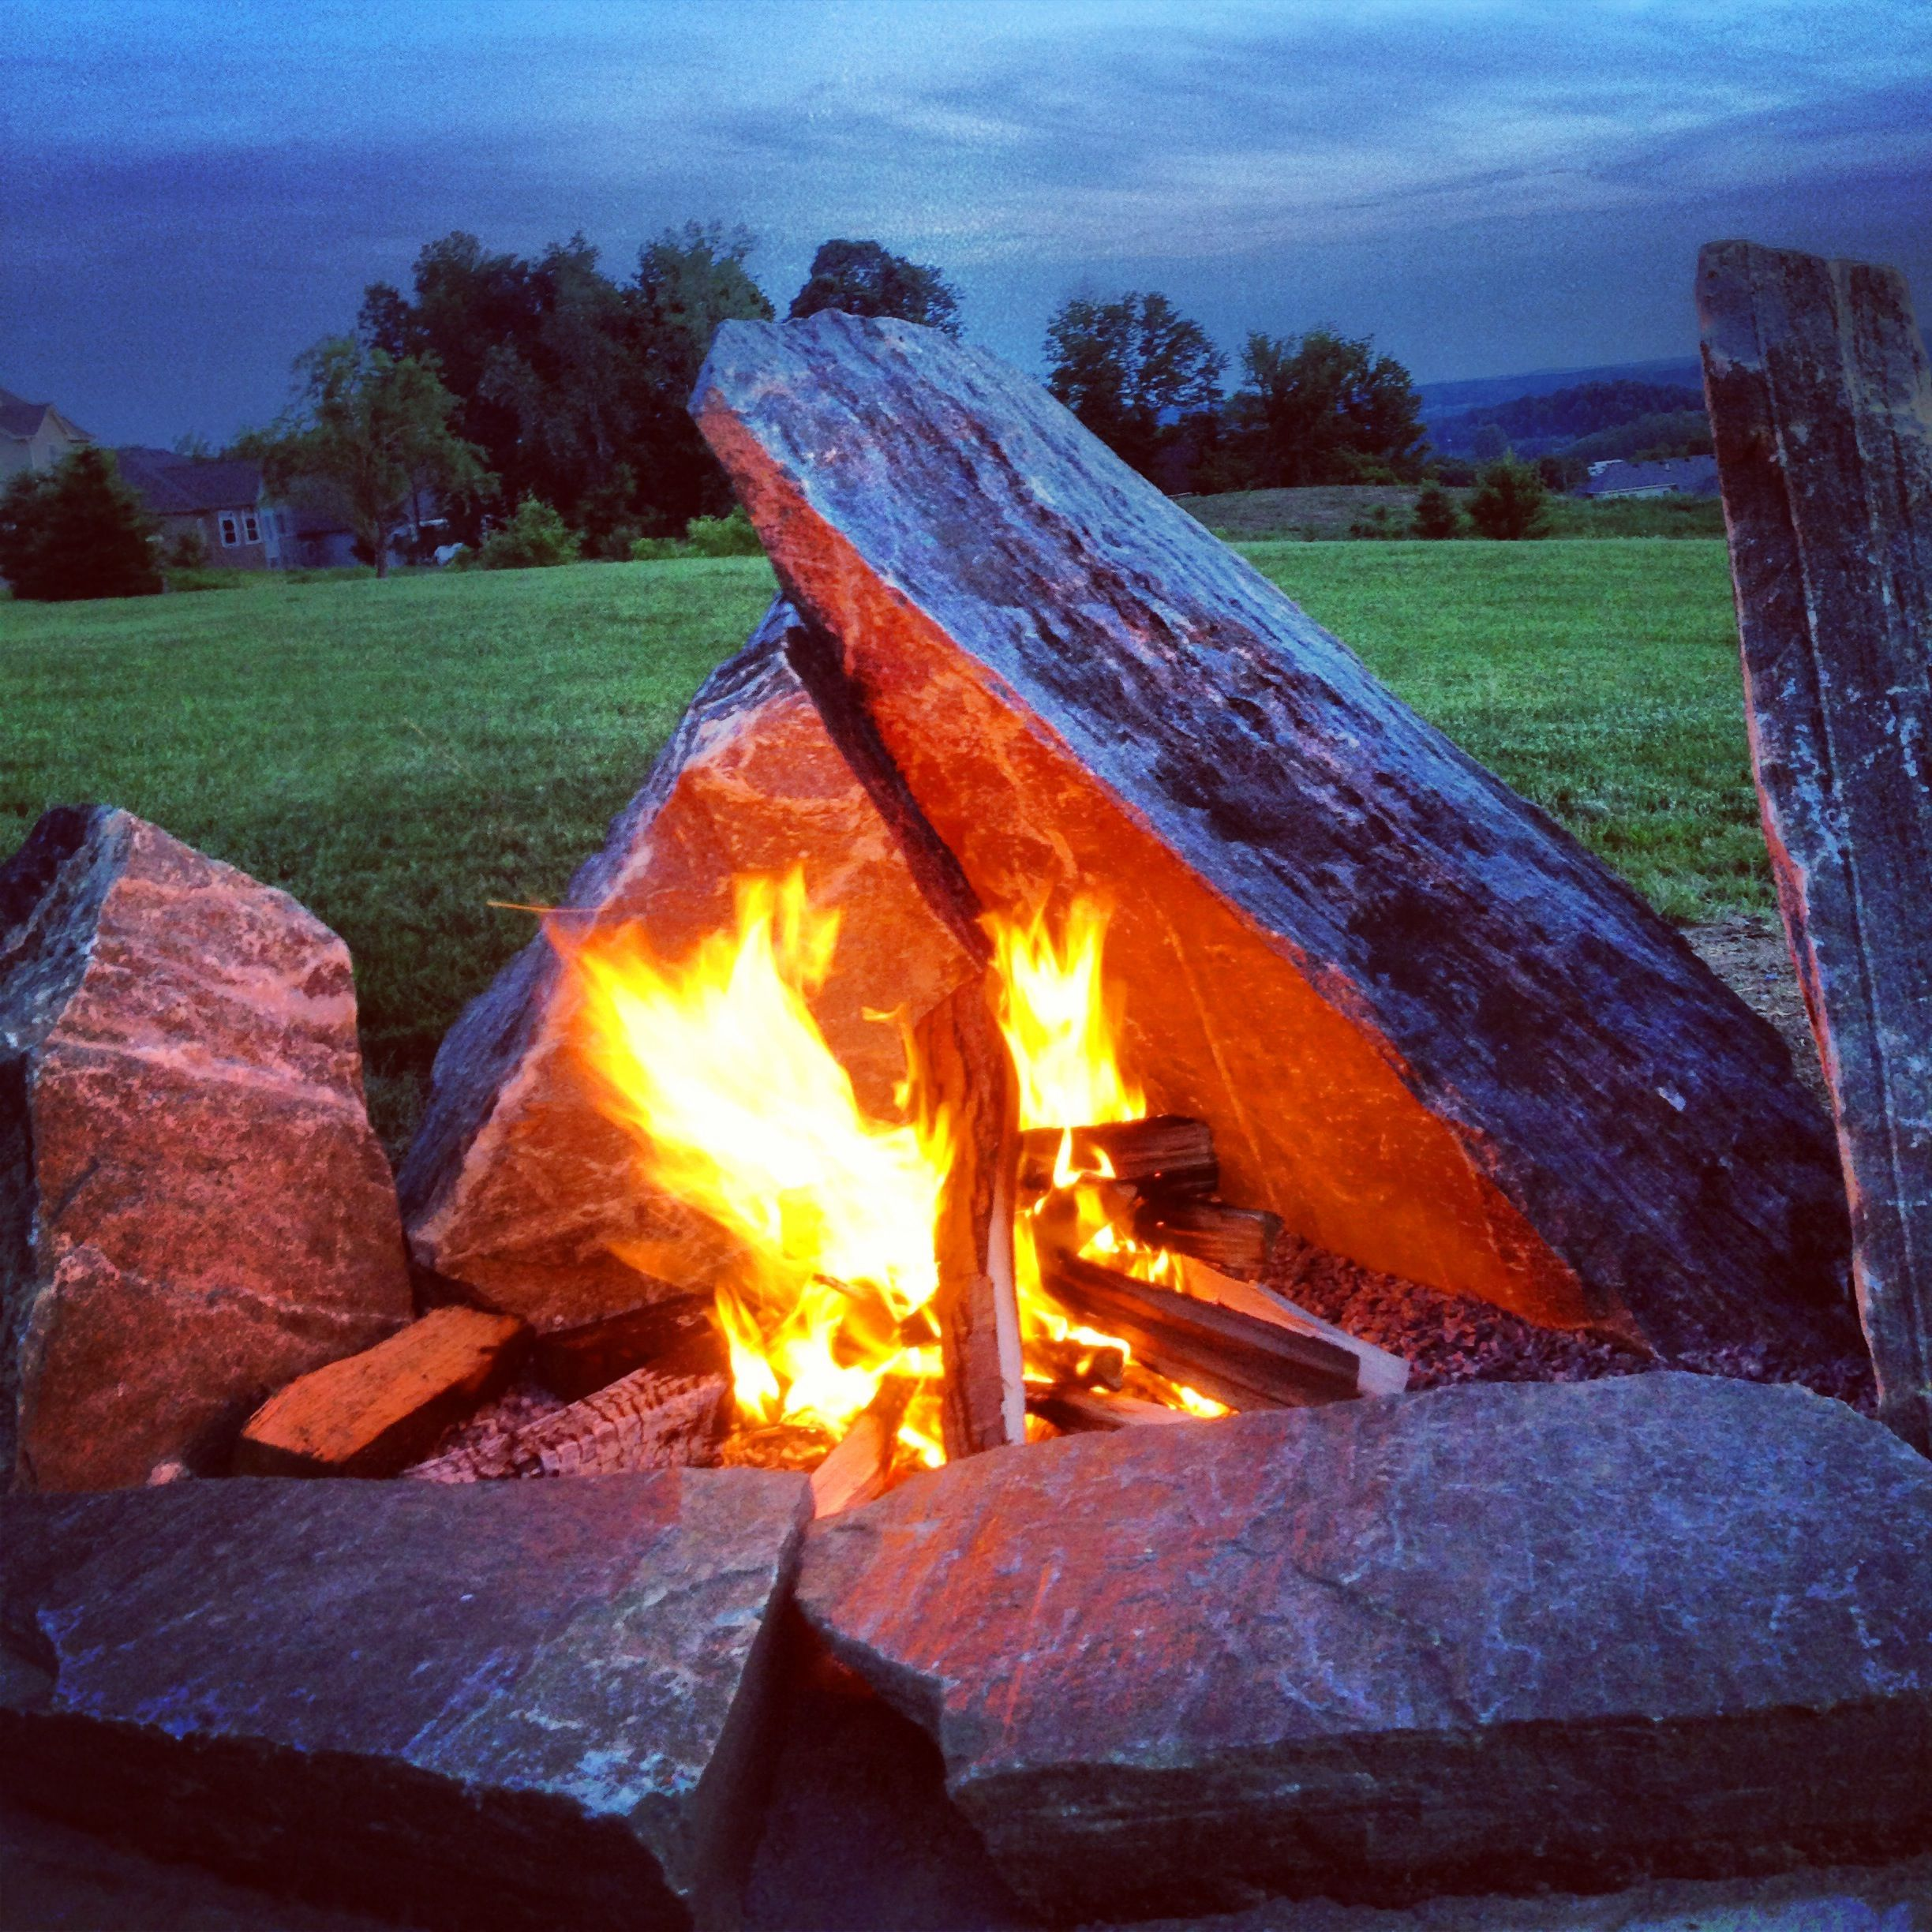 b47f98d05dedd2c5fbf955f0ed5b3015 Top Result 50 Awesome Fire Pit Store Photography 2018 Hzt6